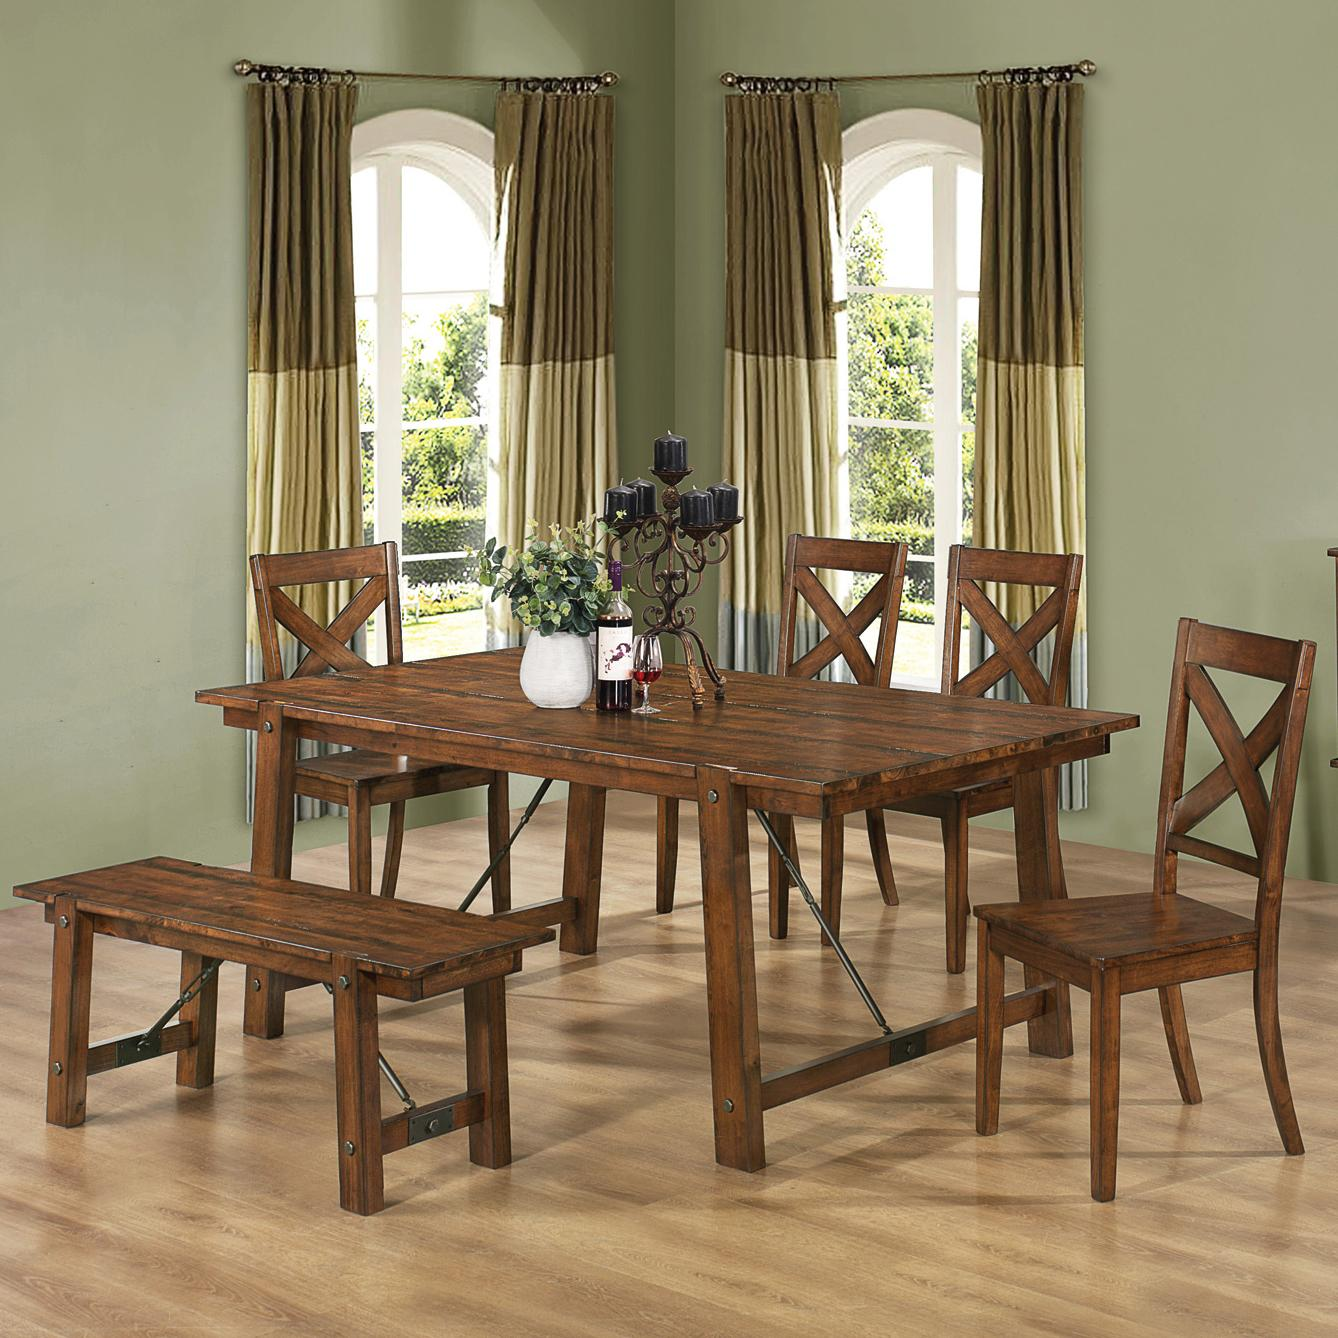 Modern 6 PC Dining Set Table, 4 Chair and Bench Furniture Stores